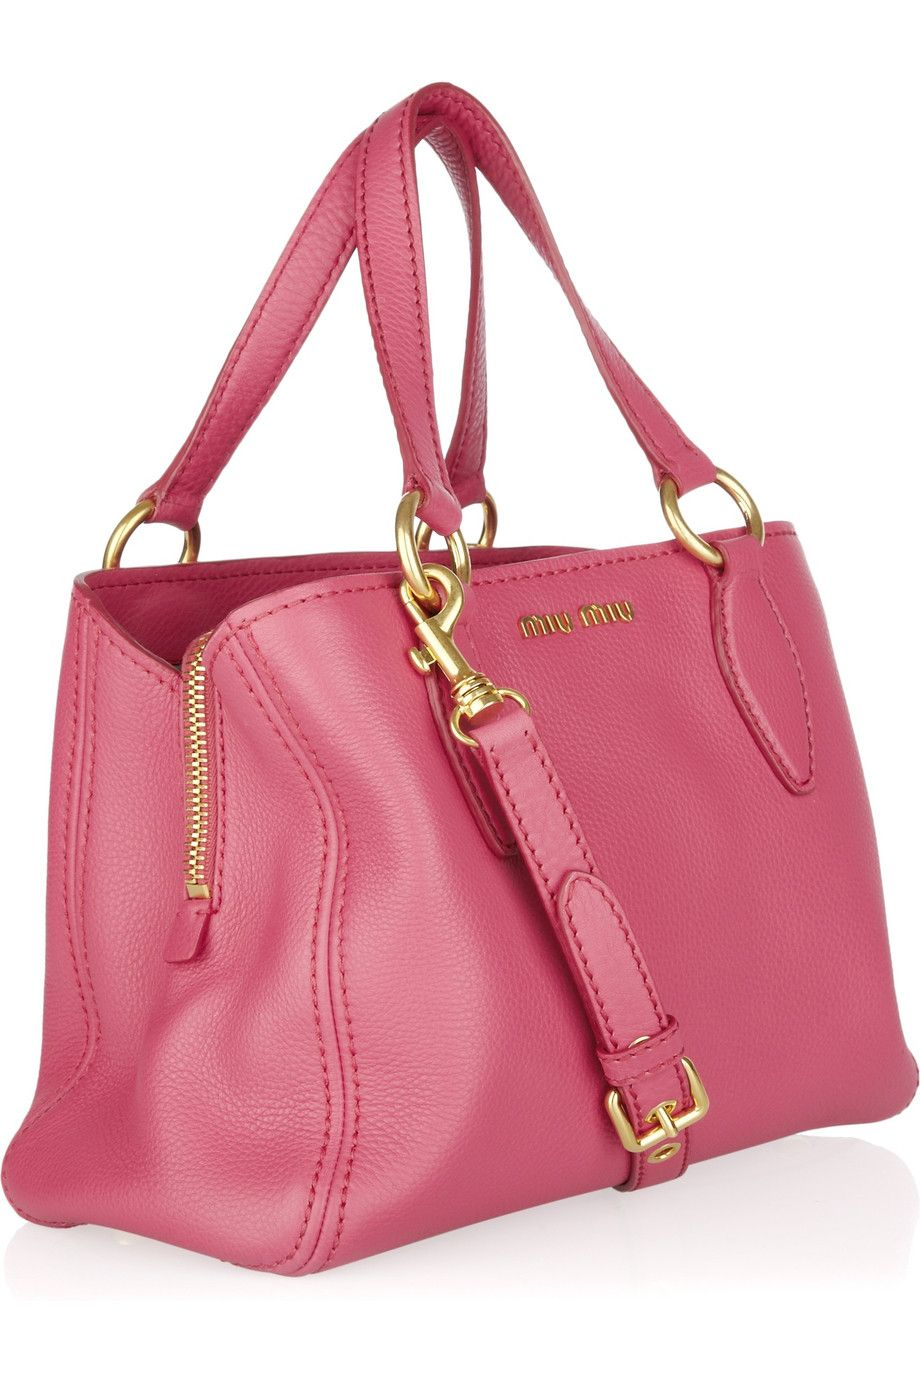 Miu Miu bag   bags and nice things to have in it   Pinterest ... 7935163aa0